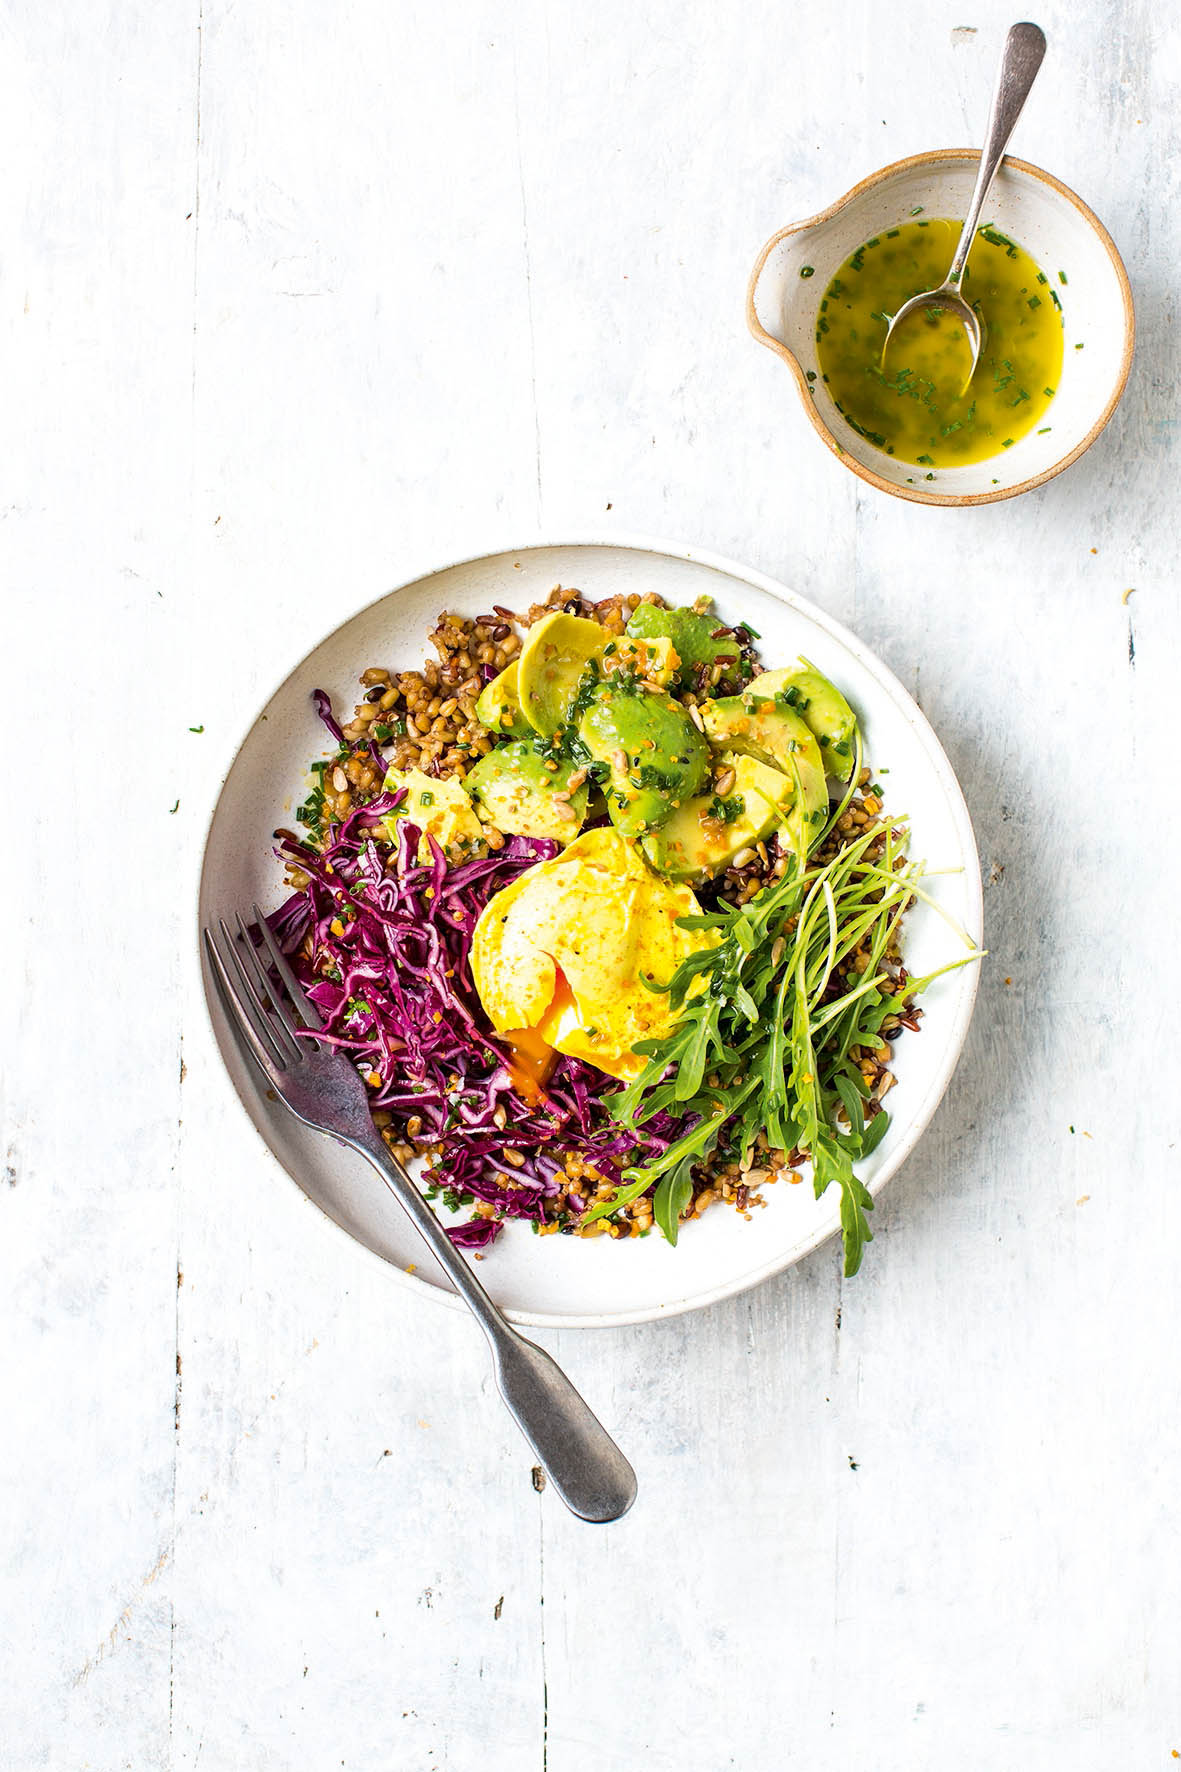 Californische lunchbowl van Donal Skehan